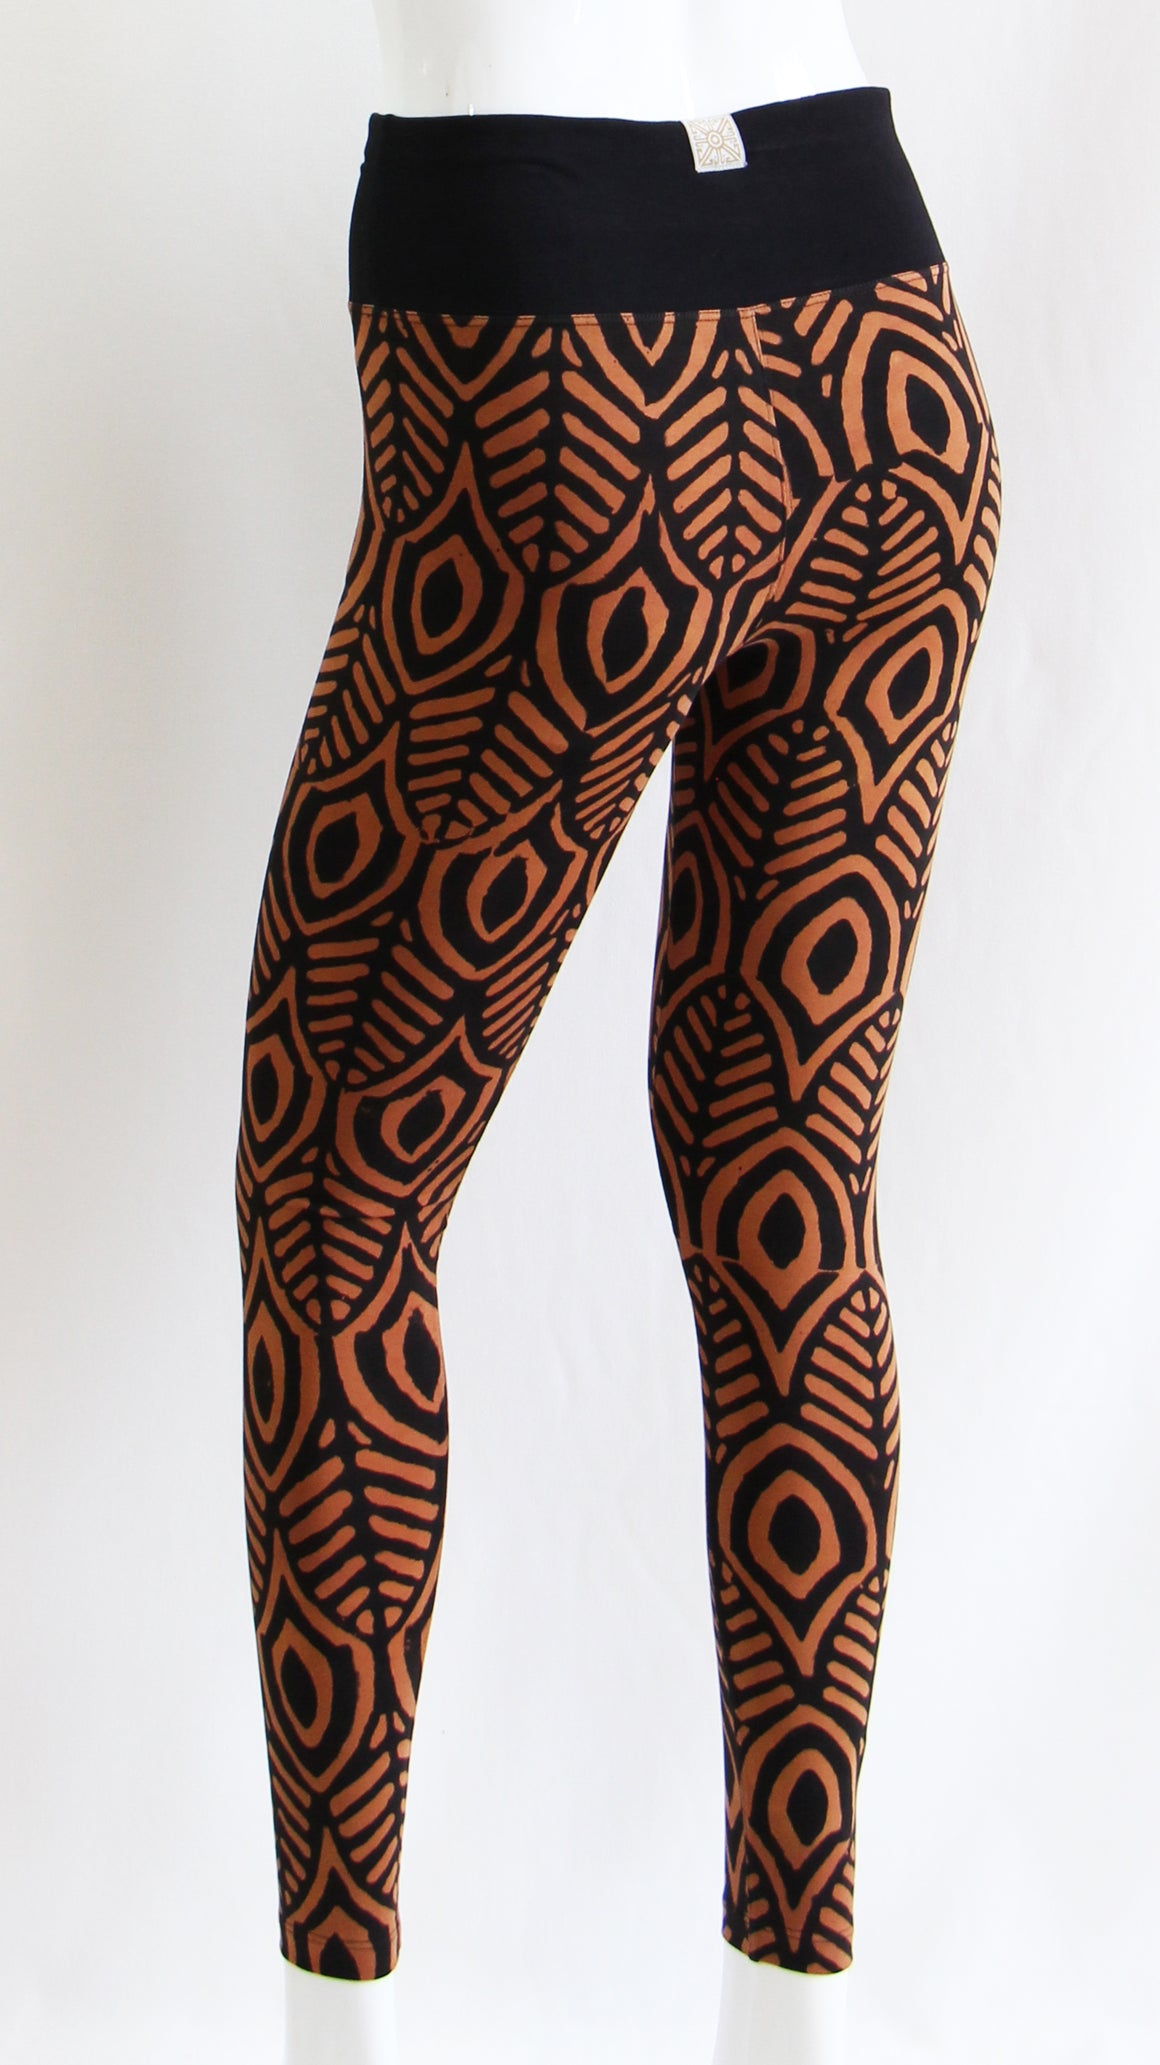 Pharaoh's Feathers - Leggings